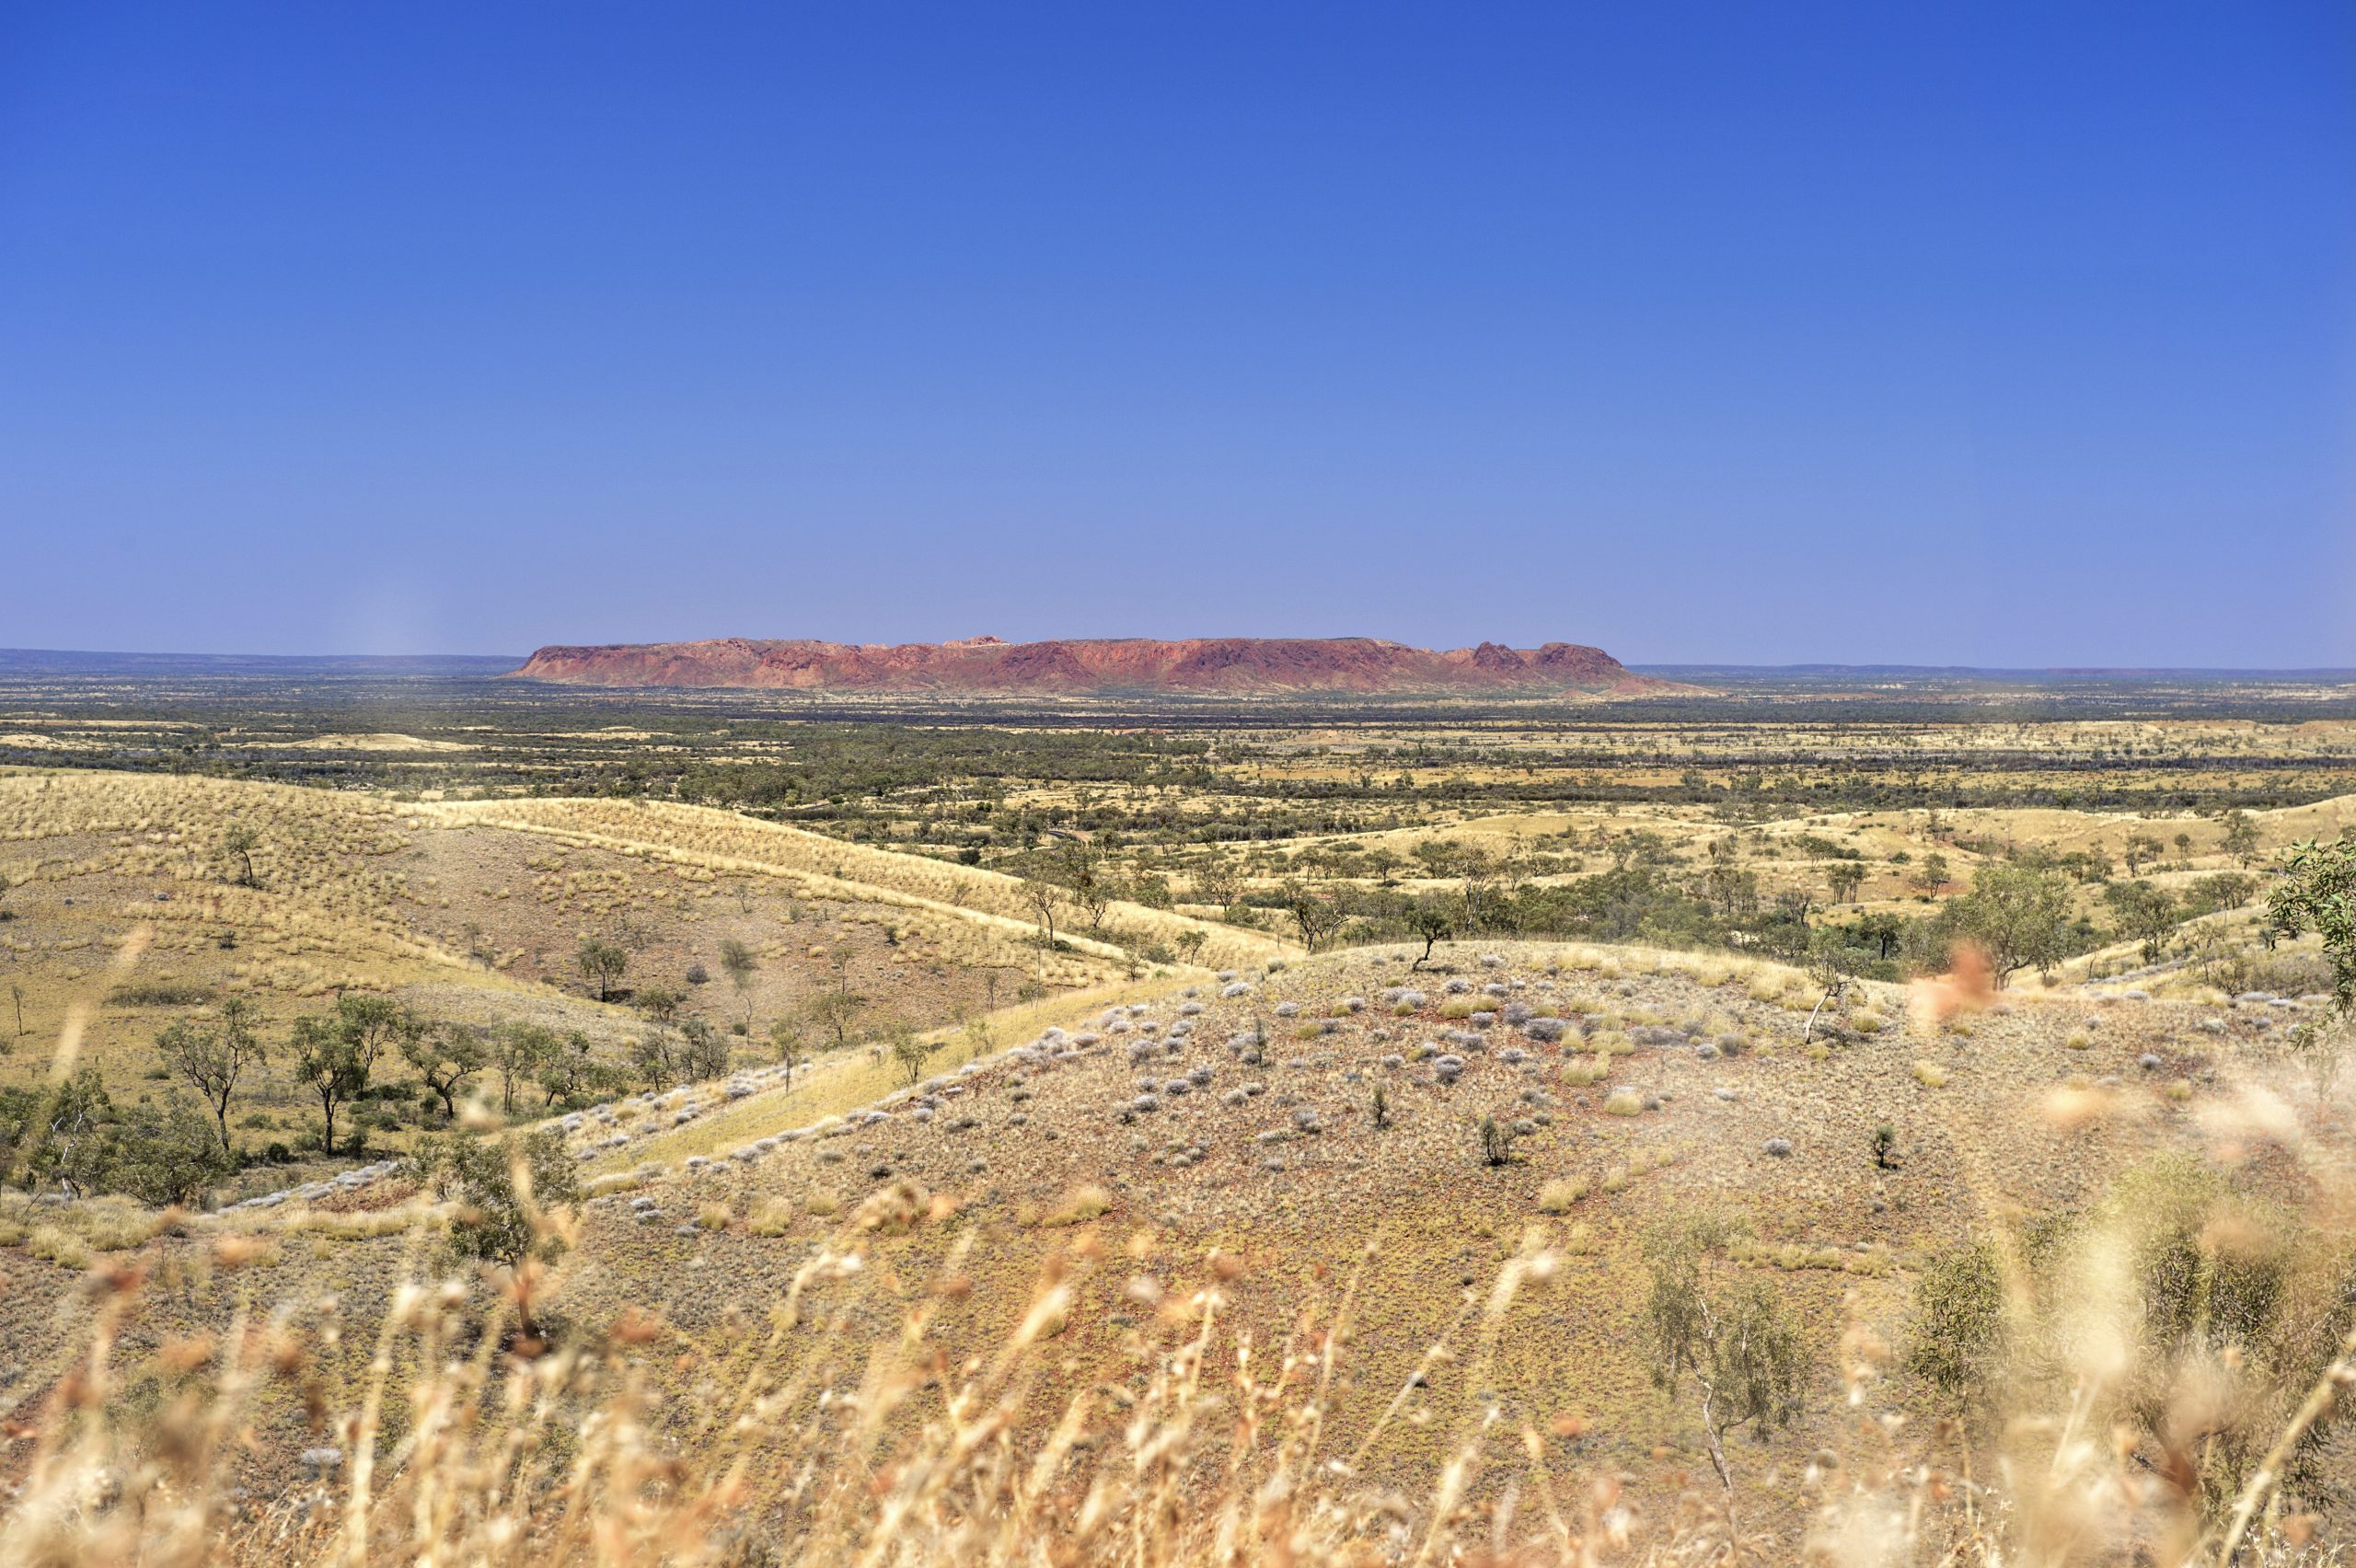 Central Australian Discovery | Gosses Bluff Crater, Red Centre, Northern Territory